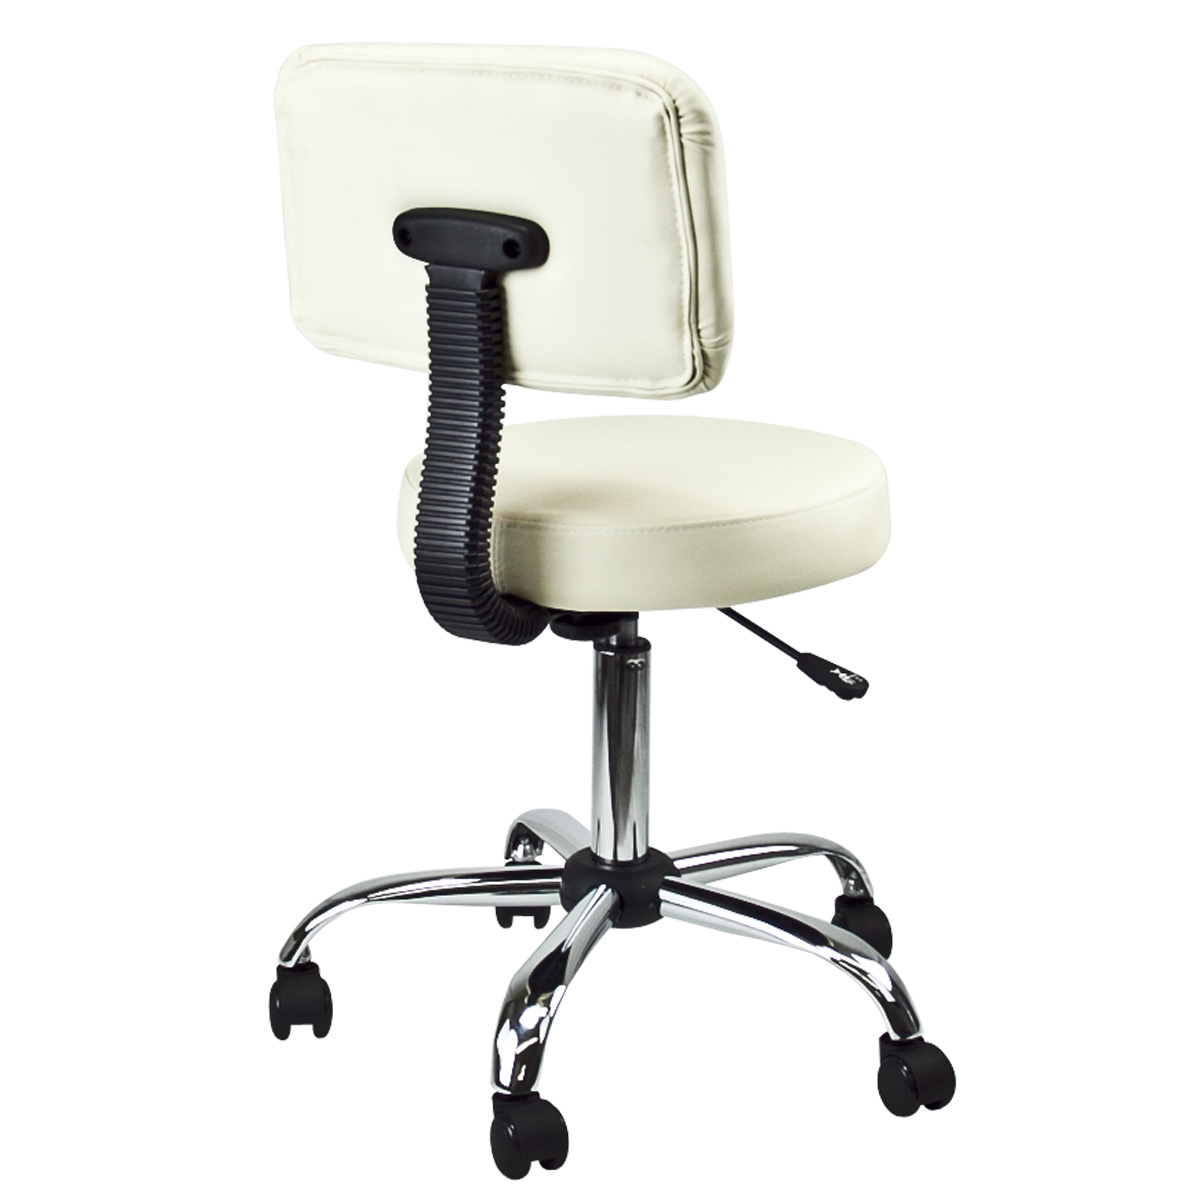 doctor dental medical salon stool with back cushion tattoo office